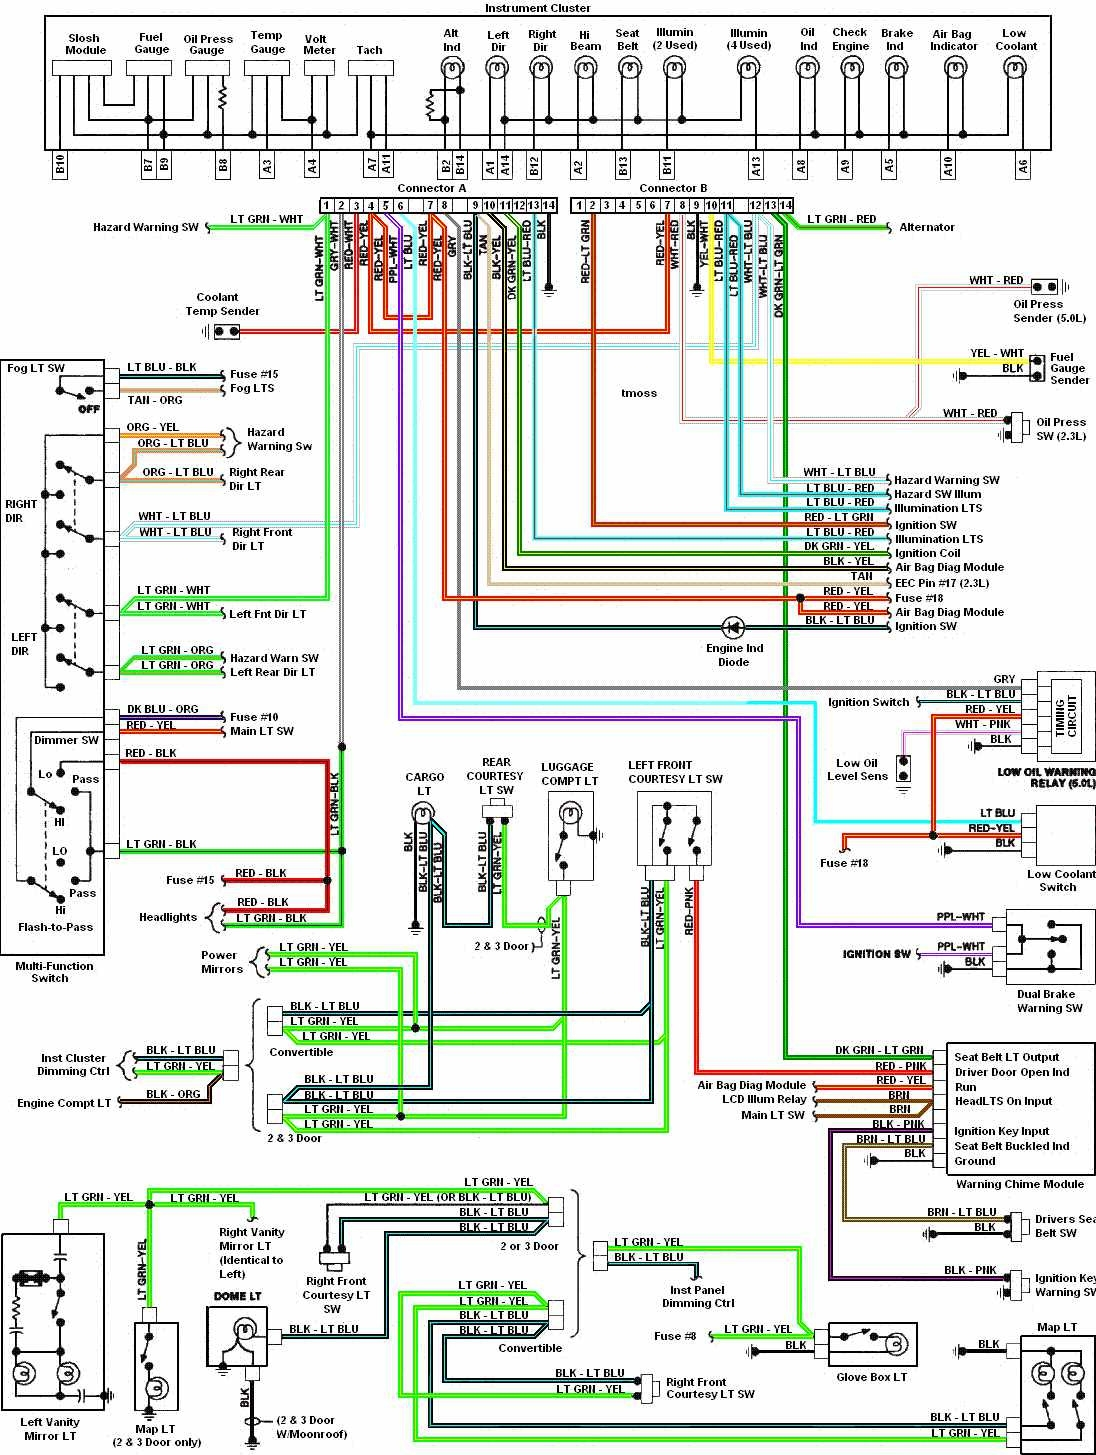 Ford Alternator Wiring Diagram Likewise 79 Ford Truck Wiring Diagram